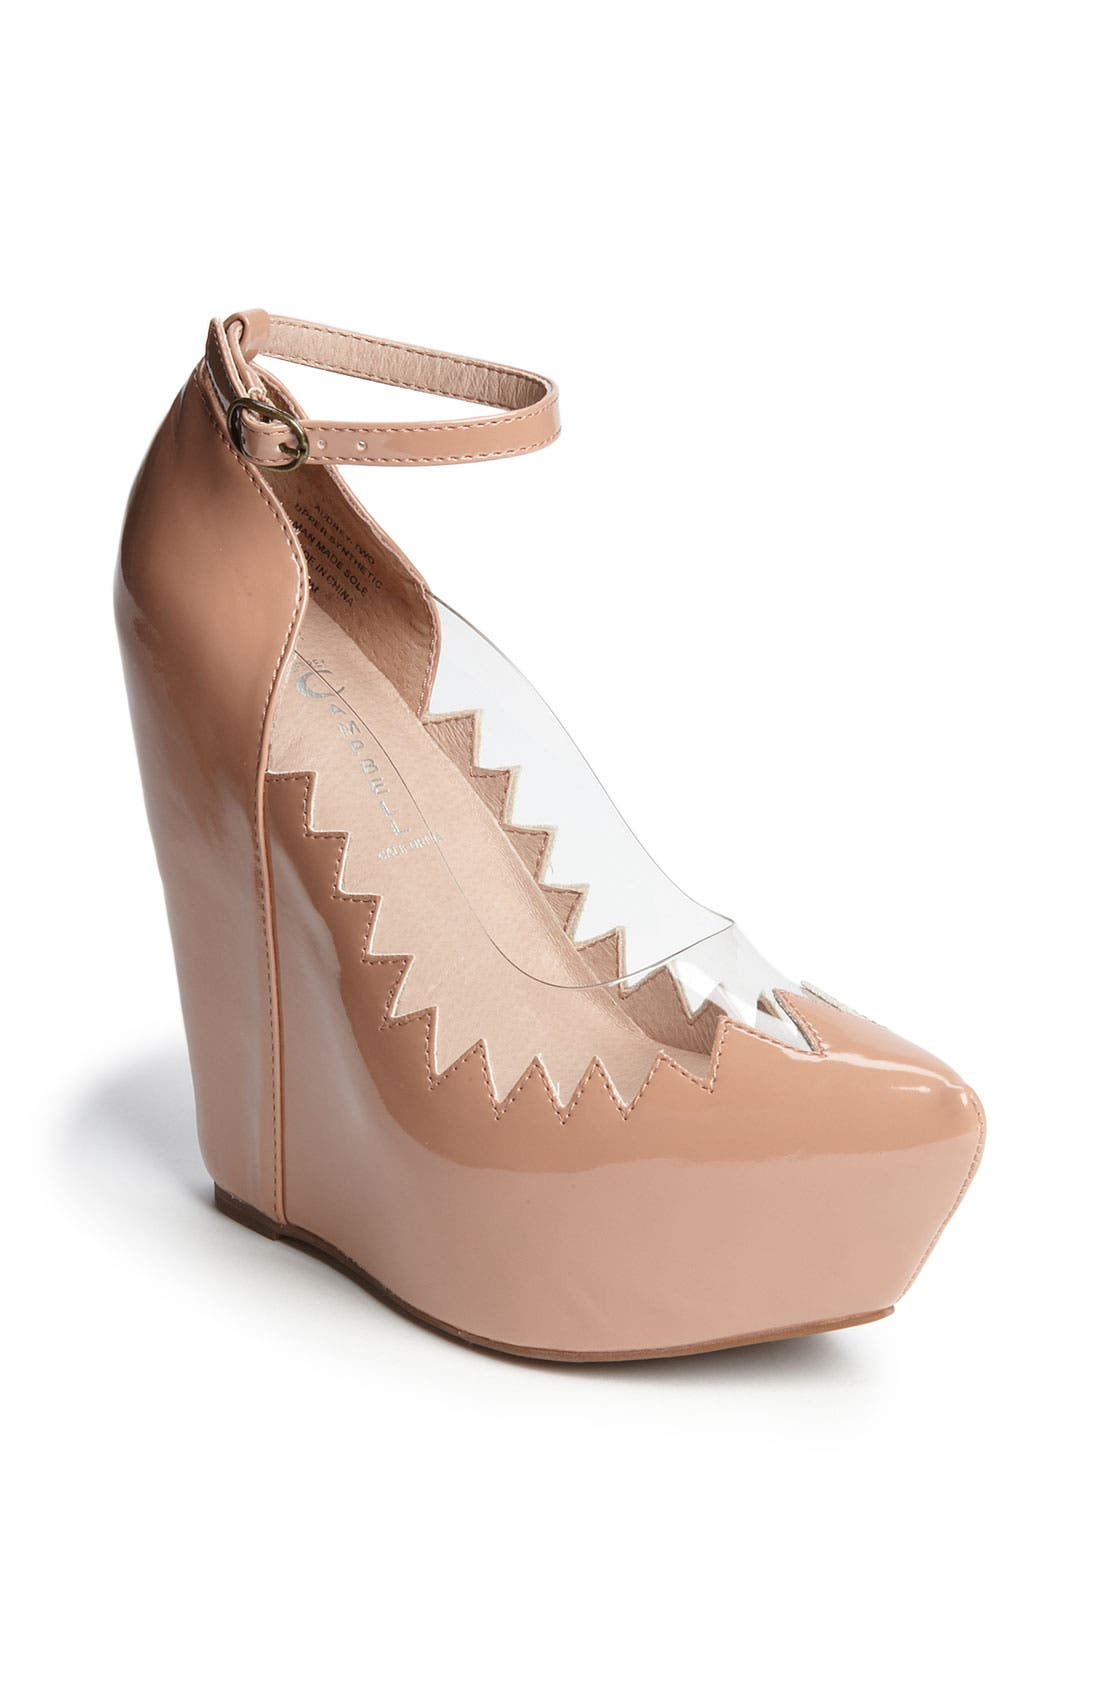 Alternate Image 1 Selected - Jeffrey Campbell 'Audrey' Pump